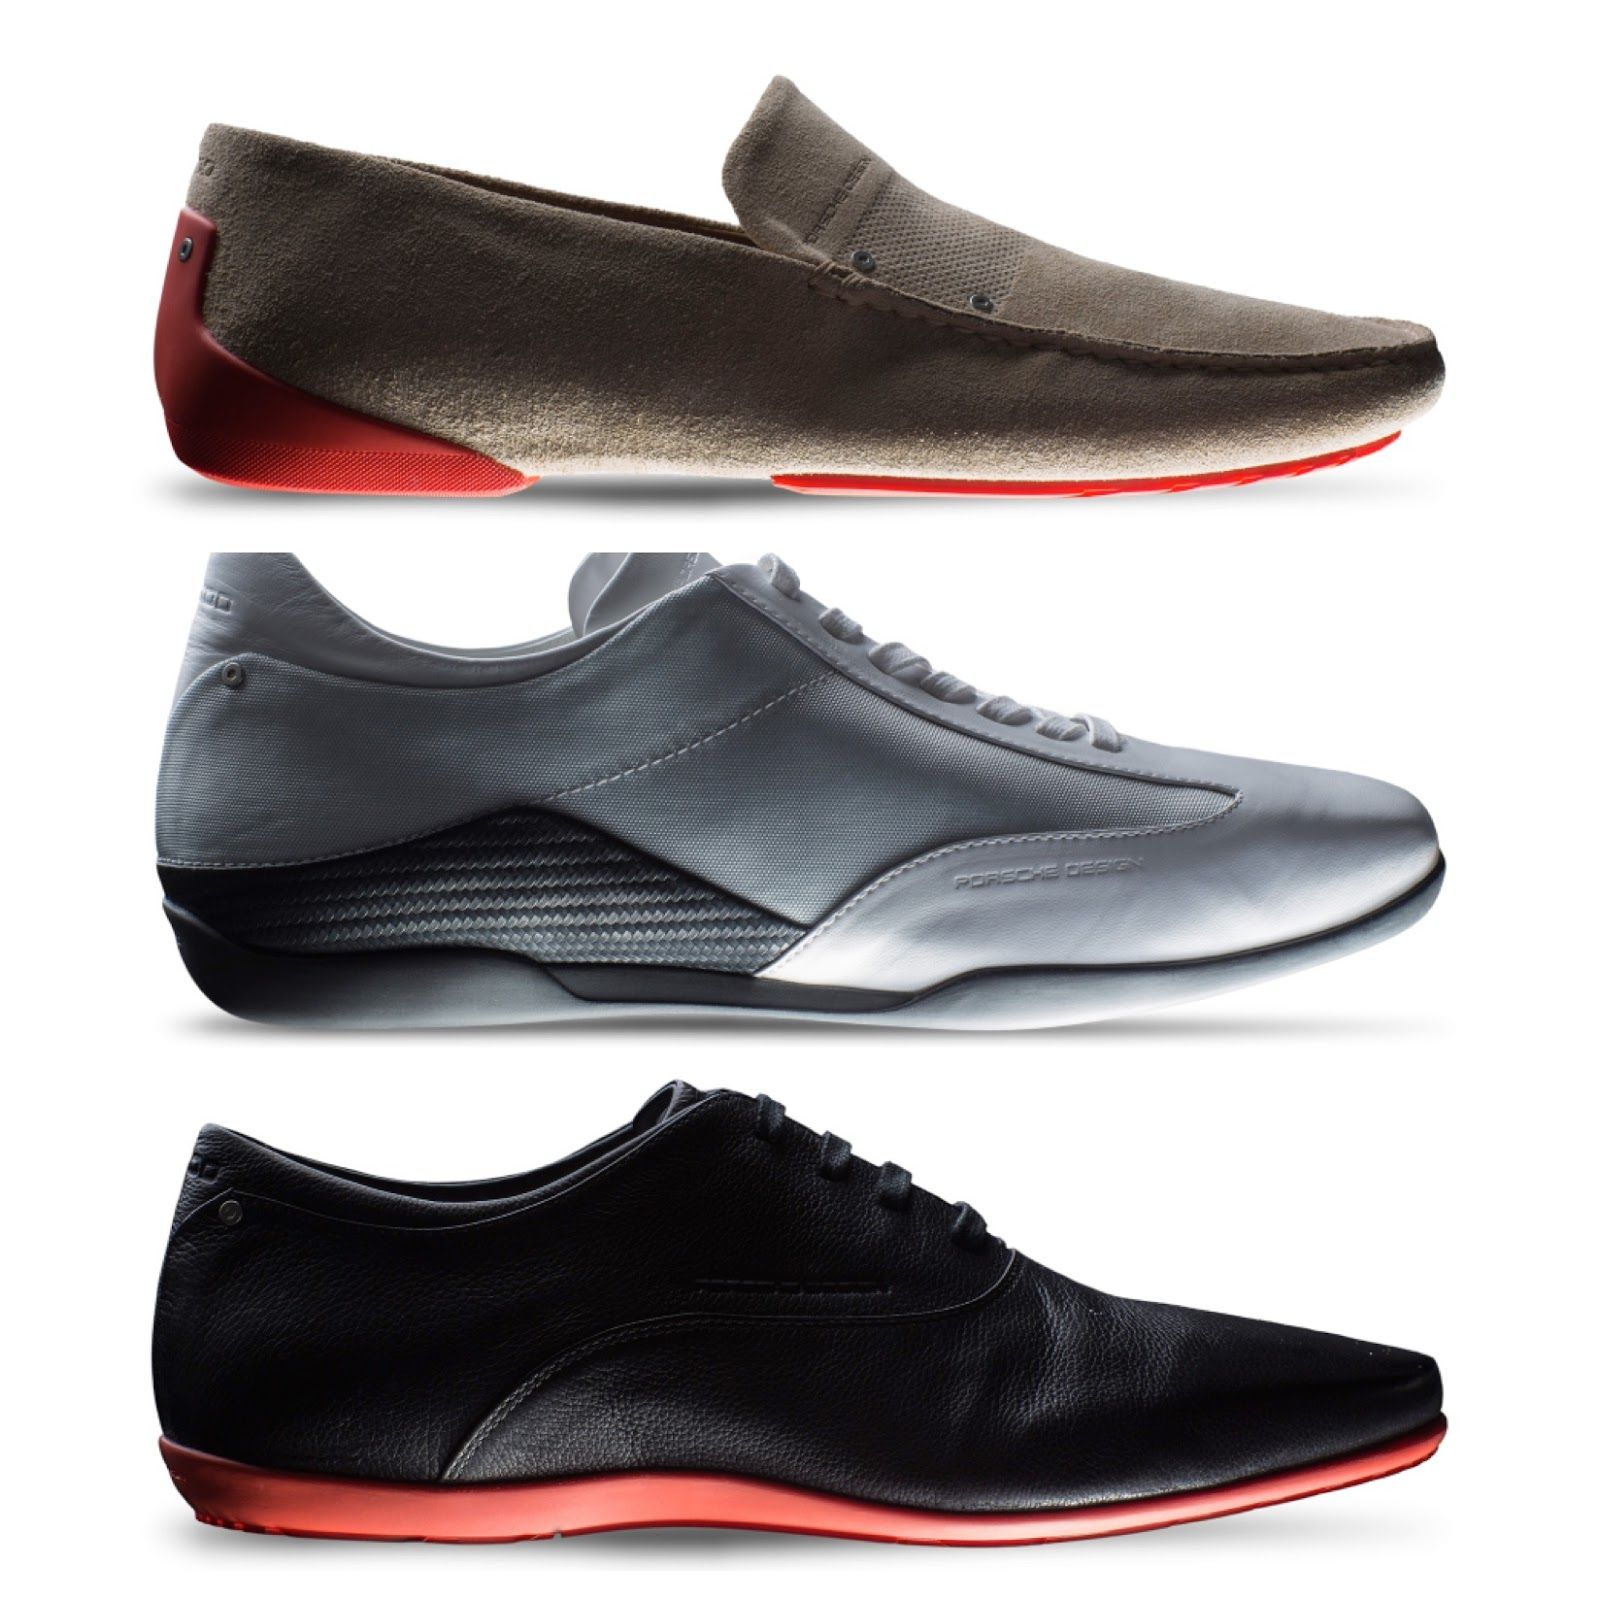 Cars & Life | Cars Fashion Lifestyle Blog: Porsche Design Summer 2014 Shoes Collection